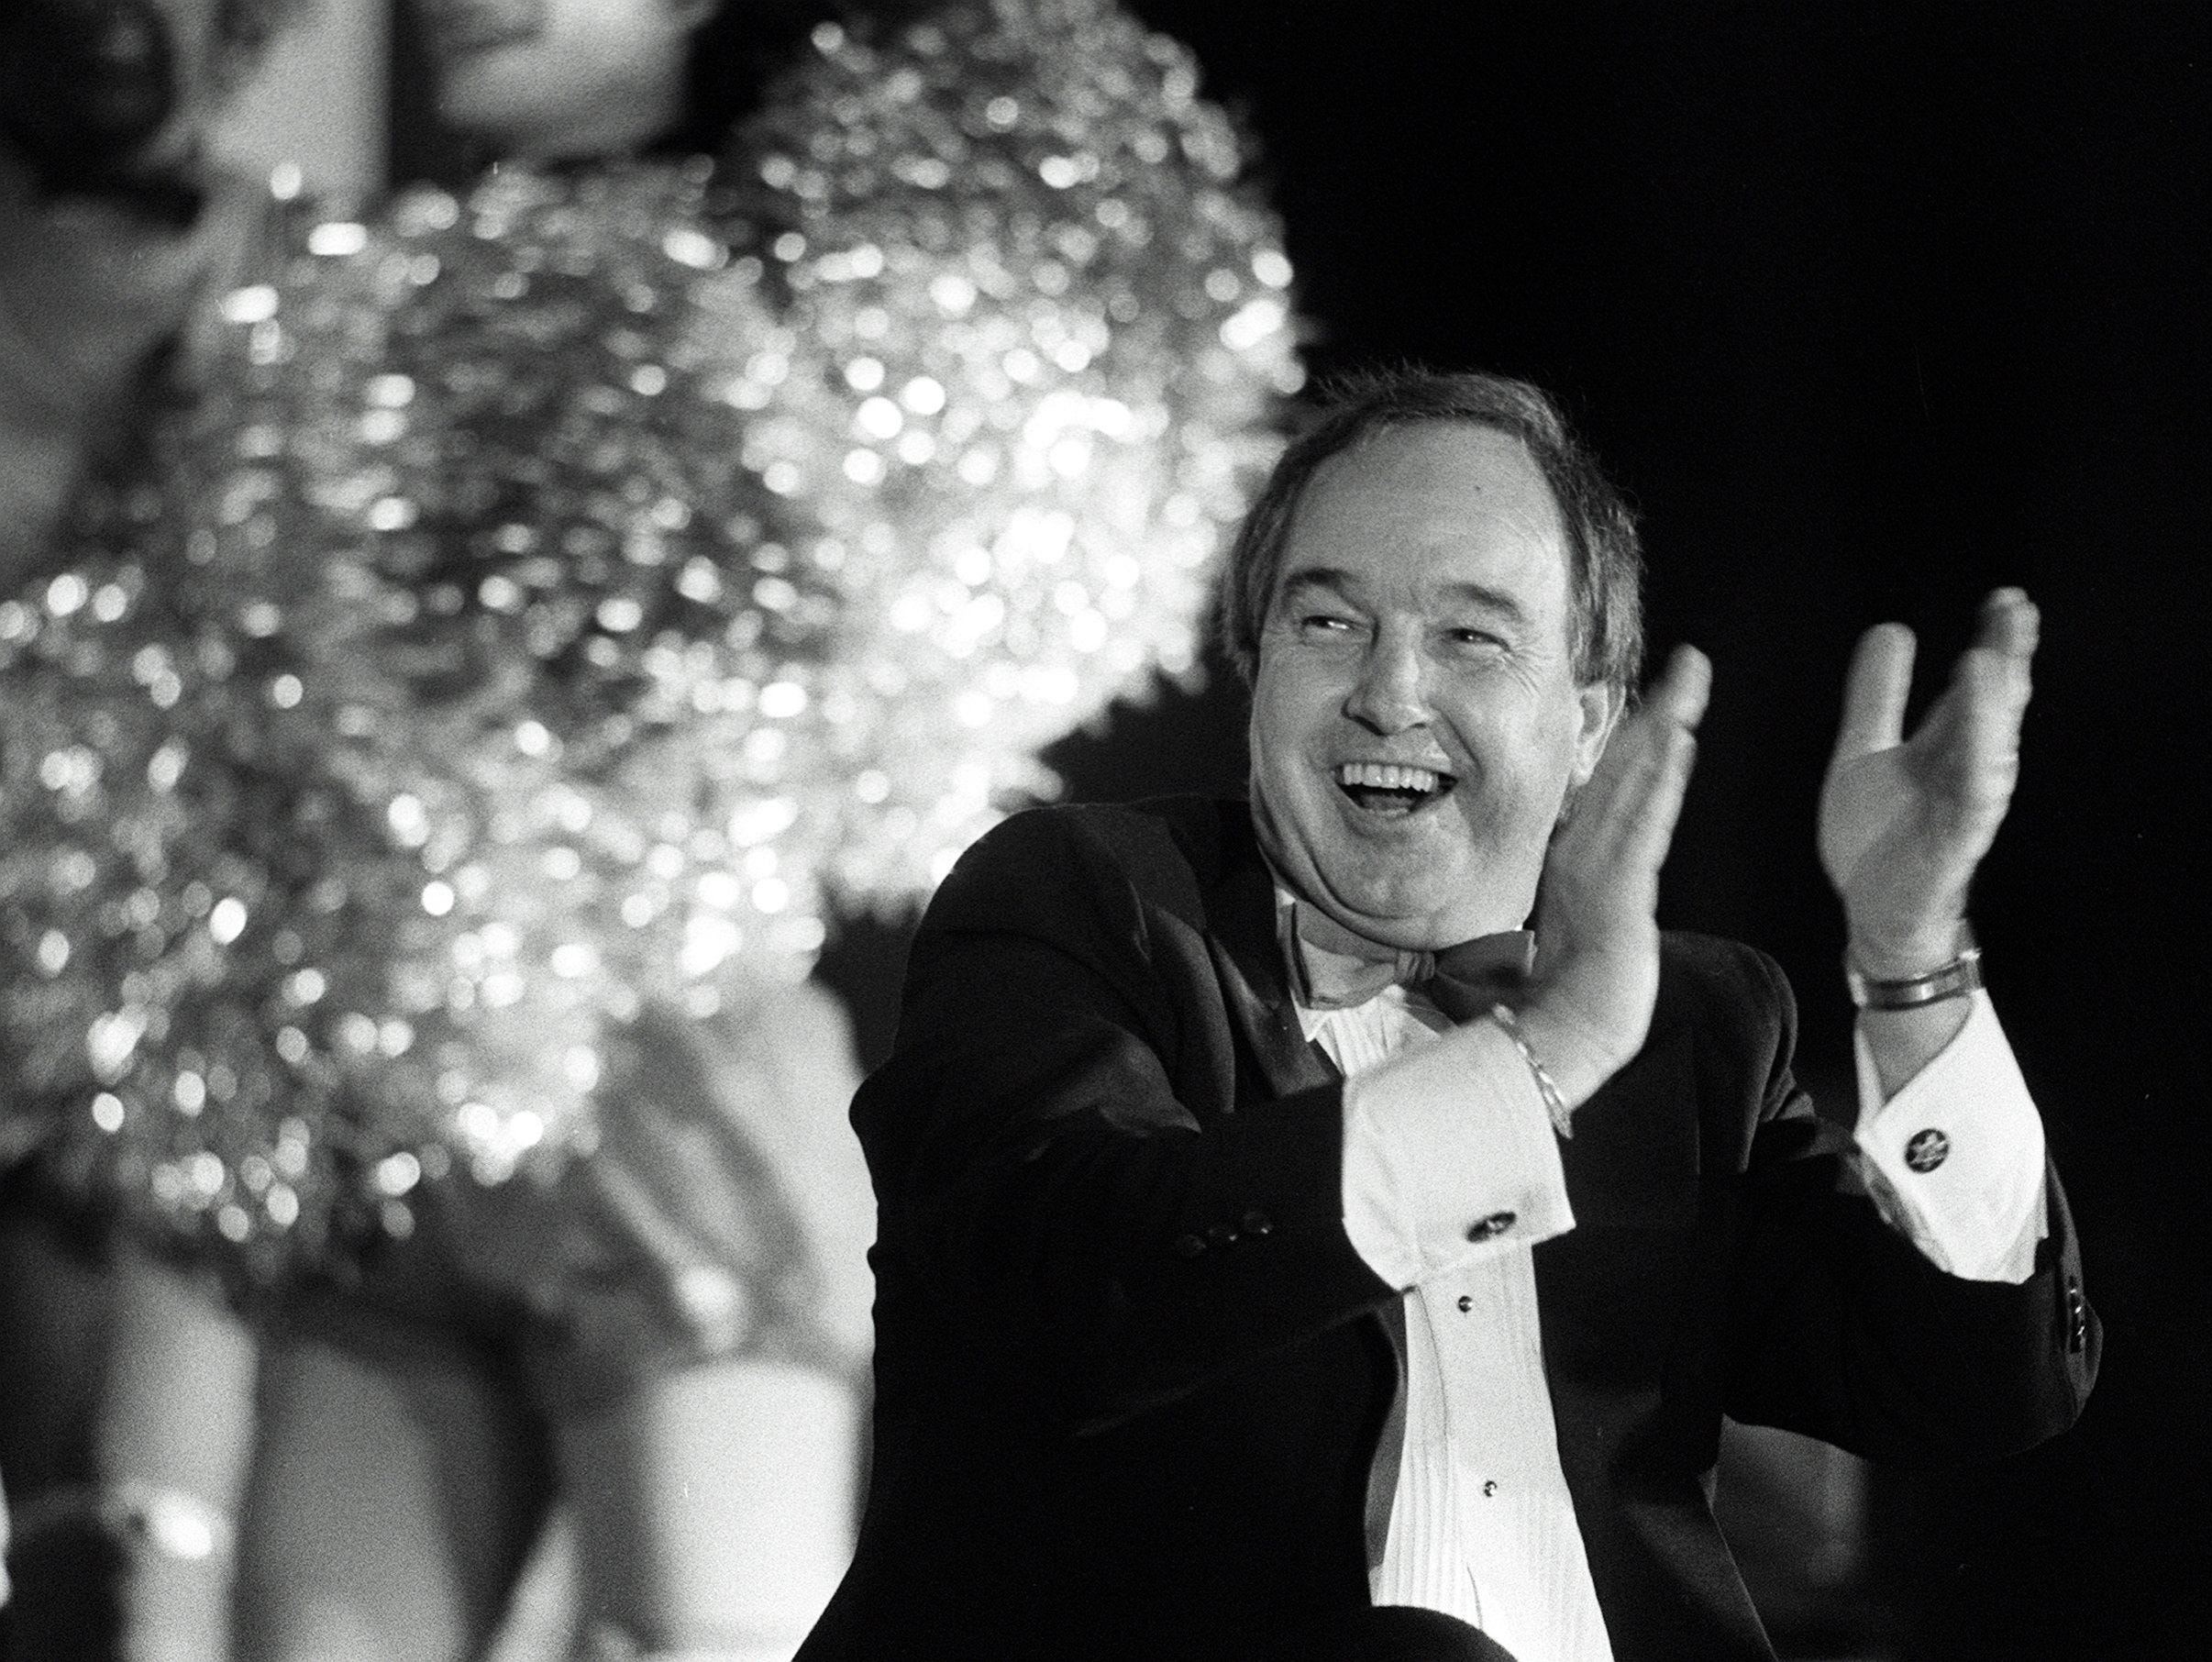 Memphis Showboats coach Pepper Rodgers shares in the laughter during a roast, where he was the object of attention, at The Peabody on 26 July 1984. Among those taking their turn at the coach were Avron Fogelman, John Grisanti and Showboats quarterback Walter Lewis. Proceeds from the event went to the Big Brothers/Big Sisters of Greater Memphis.